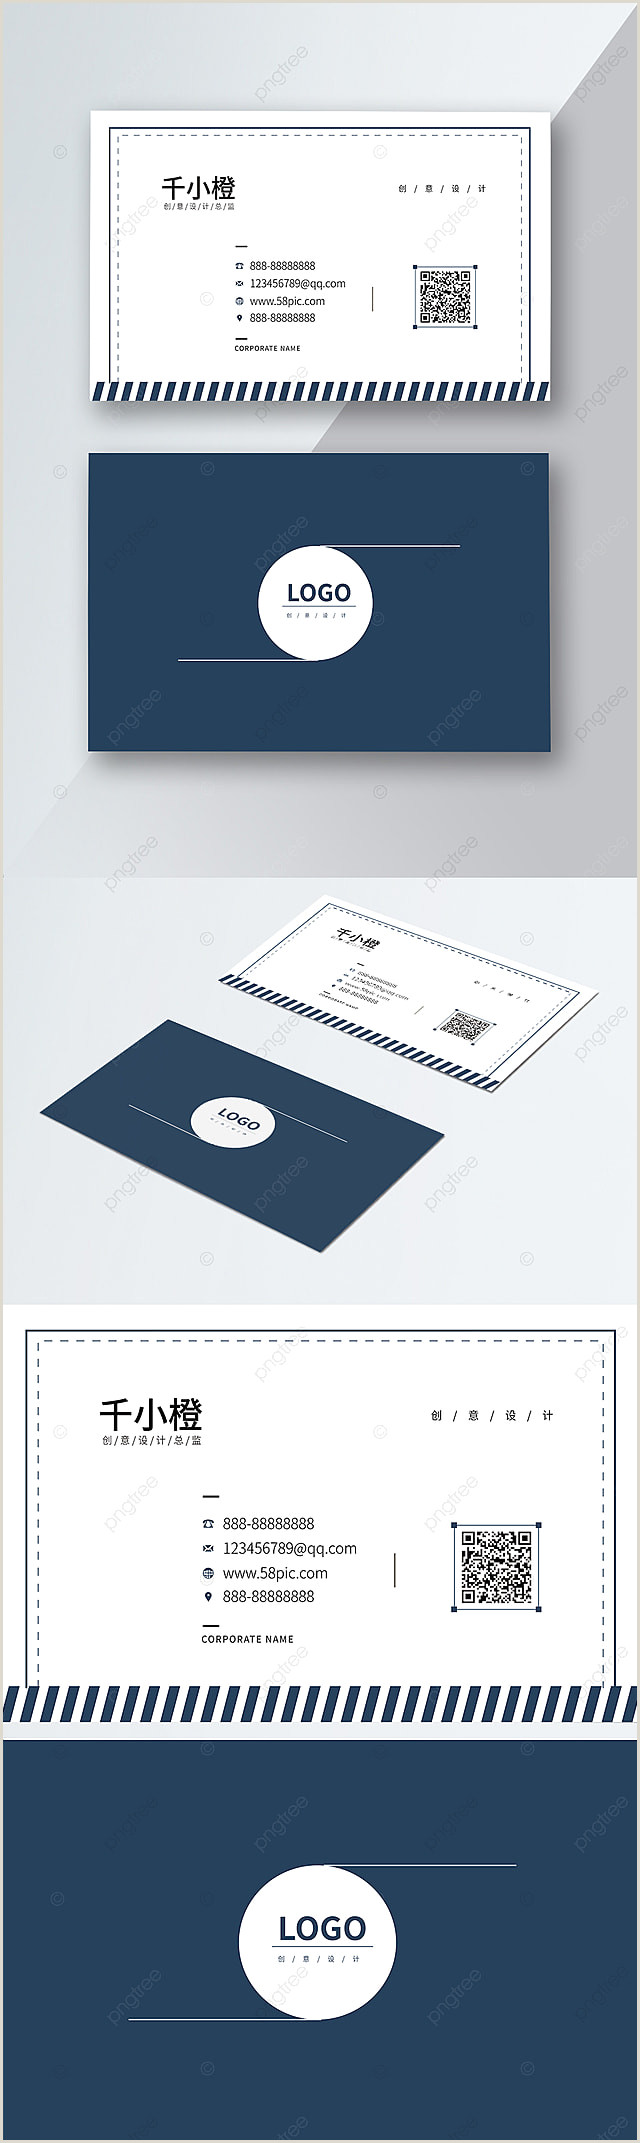 Personal Business Card Template Personal Business Card Templates Psd 2 317 Design Templates